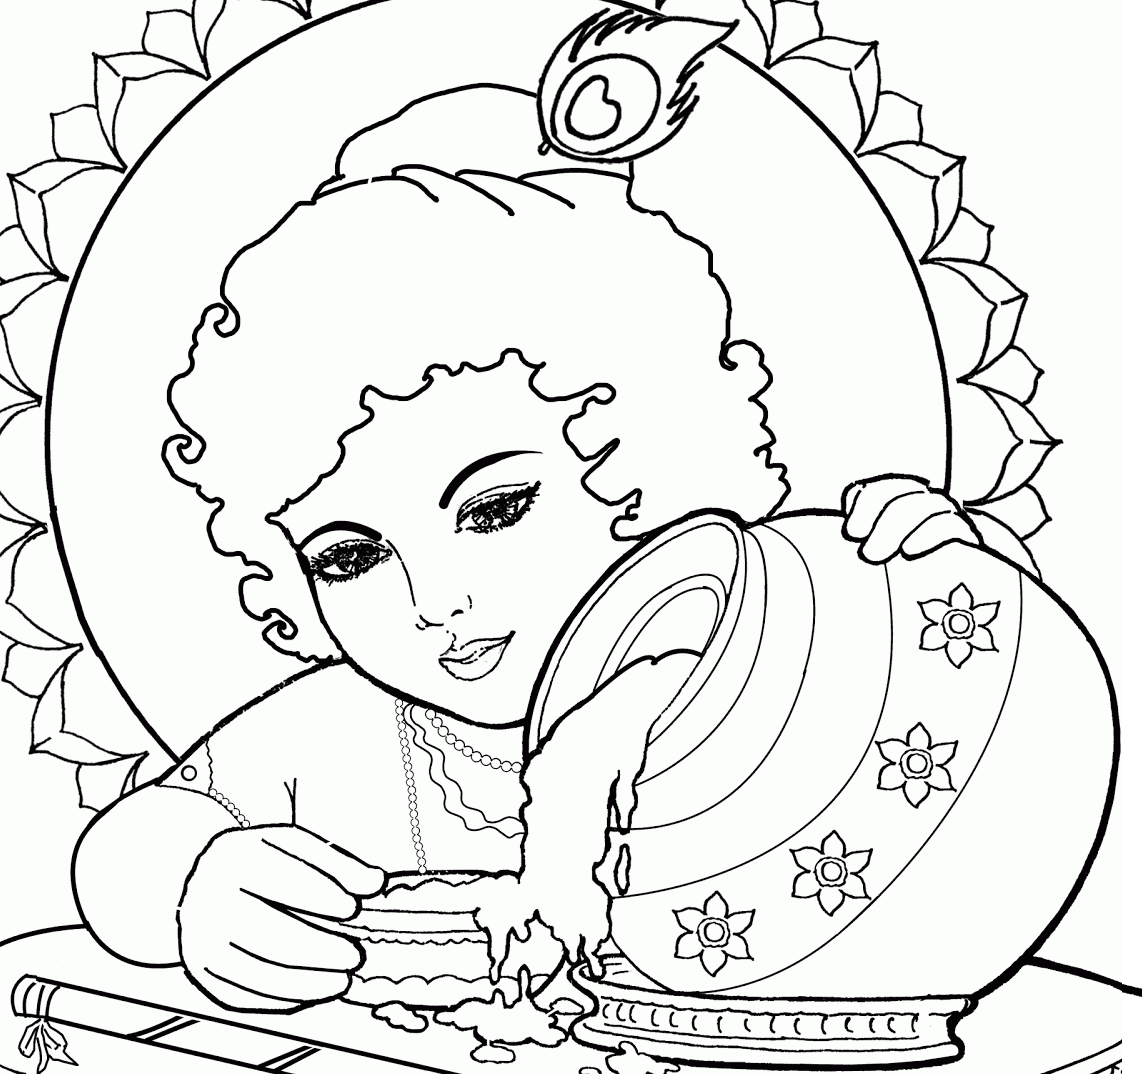 krishna pages for coloring - photo#32